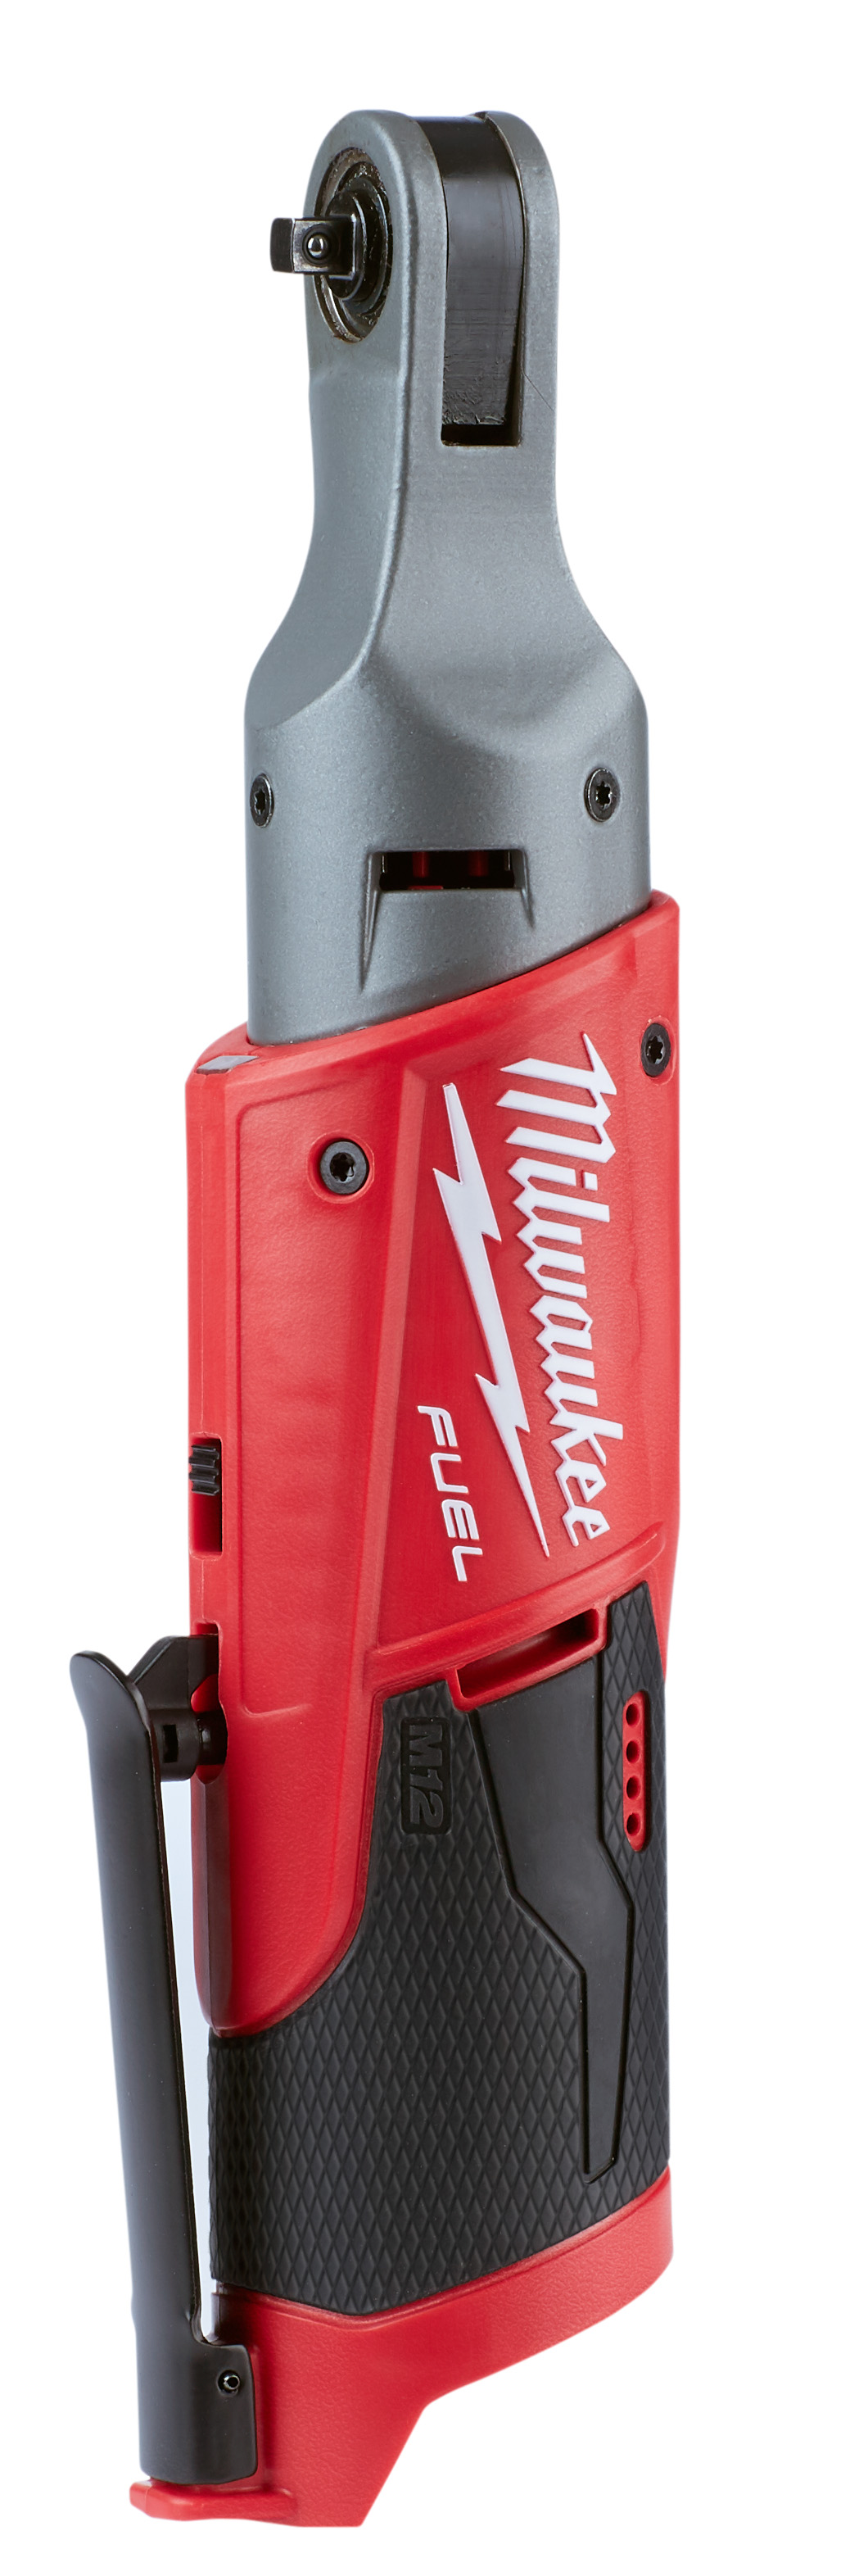 Milwaukee® M12™ FUEL™ 2556-20 Cordless Ratchet, 1/4 in Drive, 40 ft-lb Torque, 0 to 250 rpm Speed, 12 VDC, Lithium-Ion Battery, 3.65 in OAL